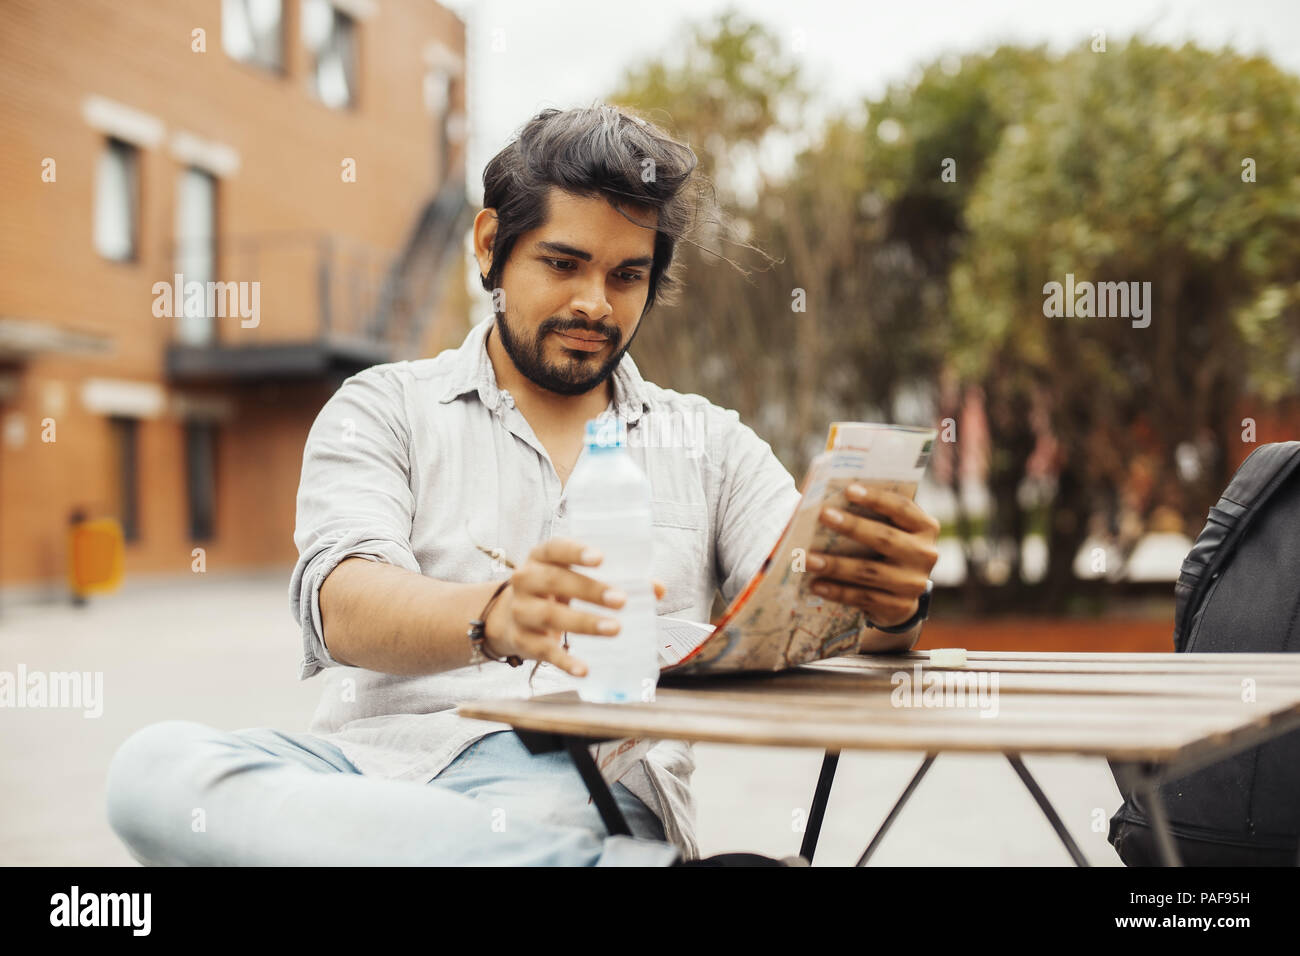 Attractive man sitting at street cafe, looking at the map and holding bottle. - Stock Image